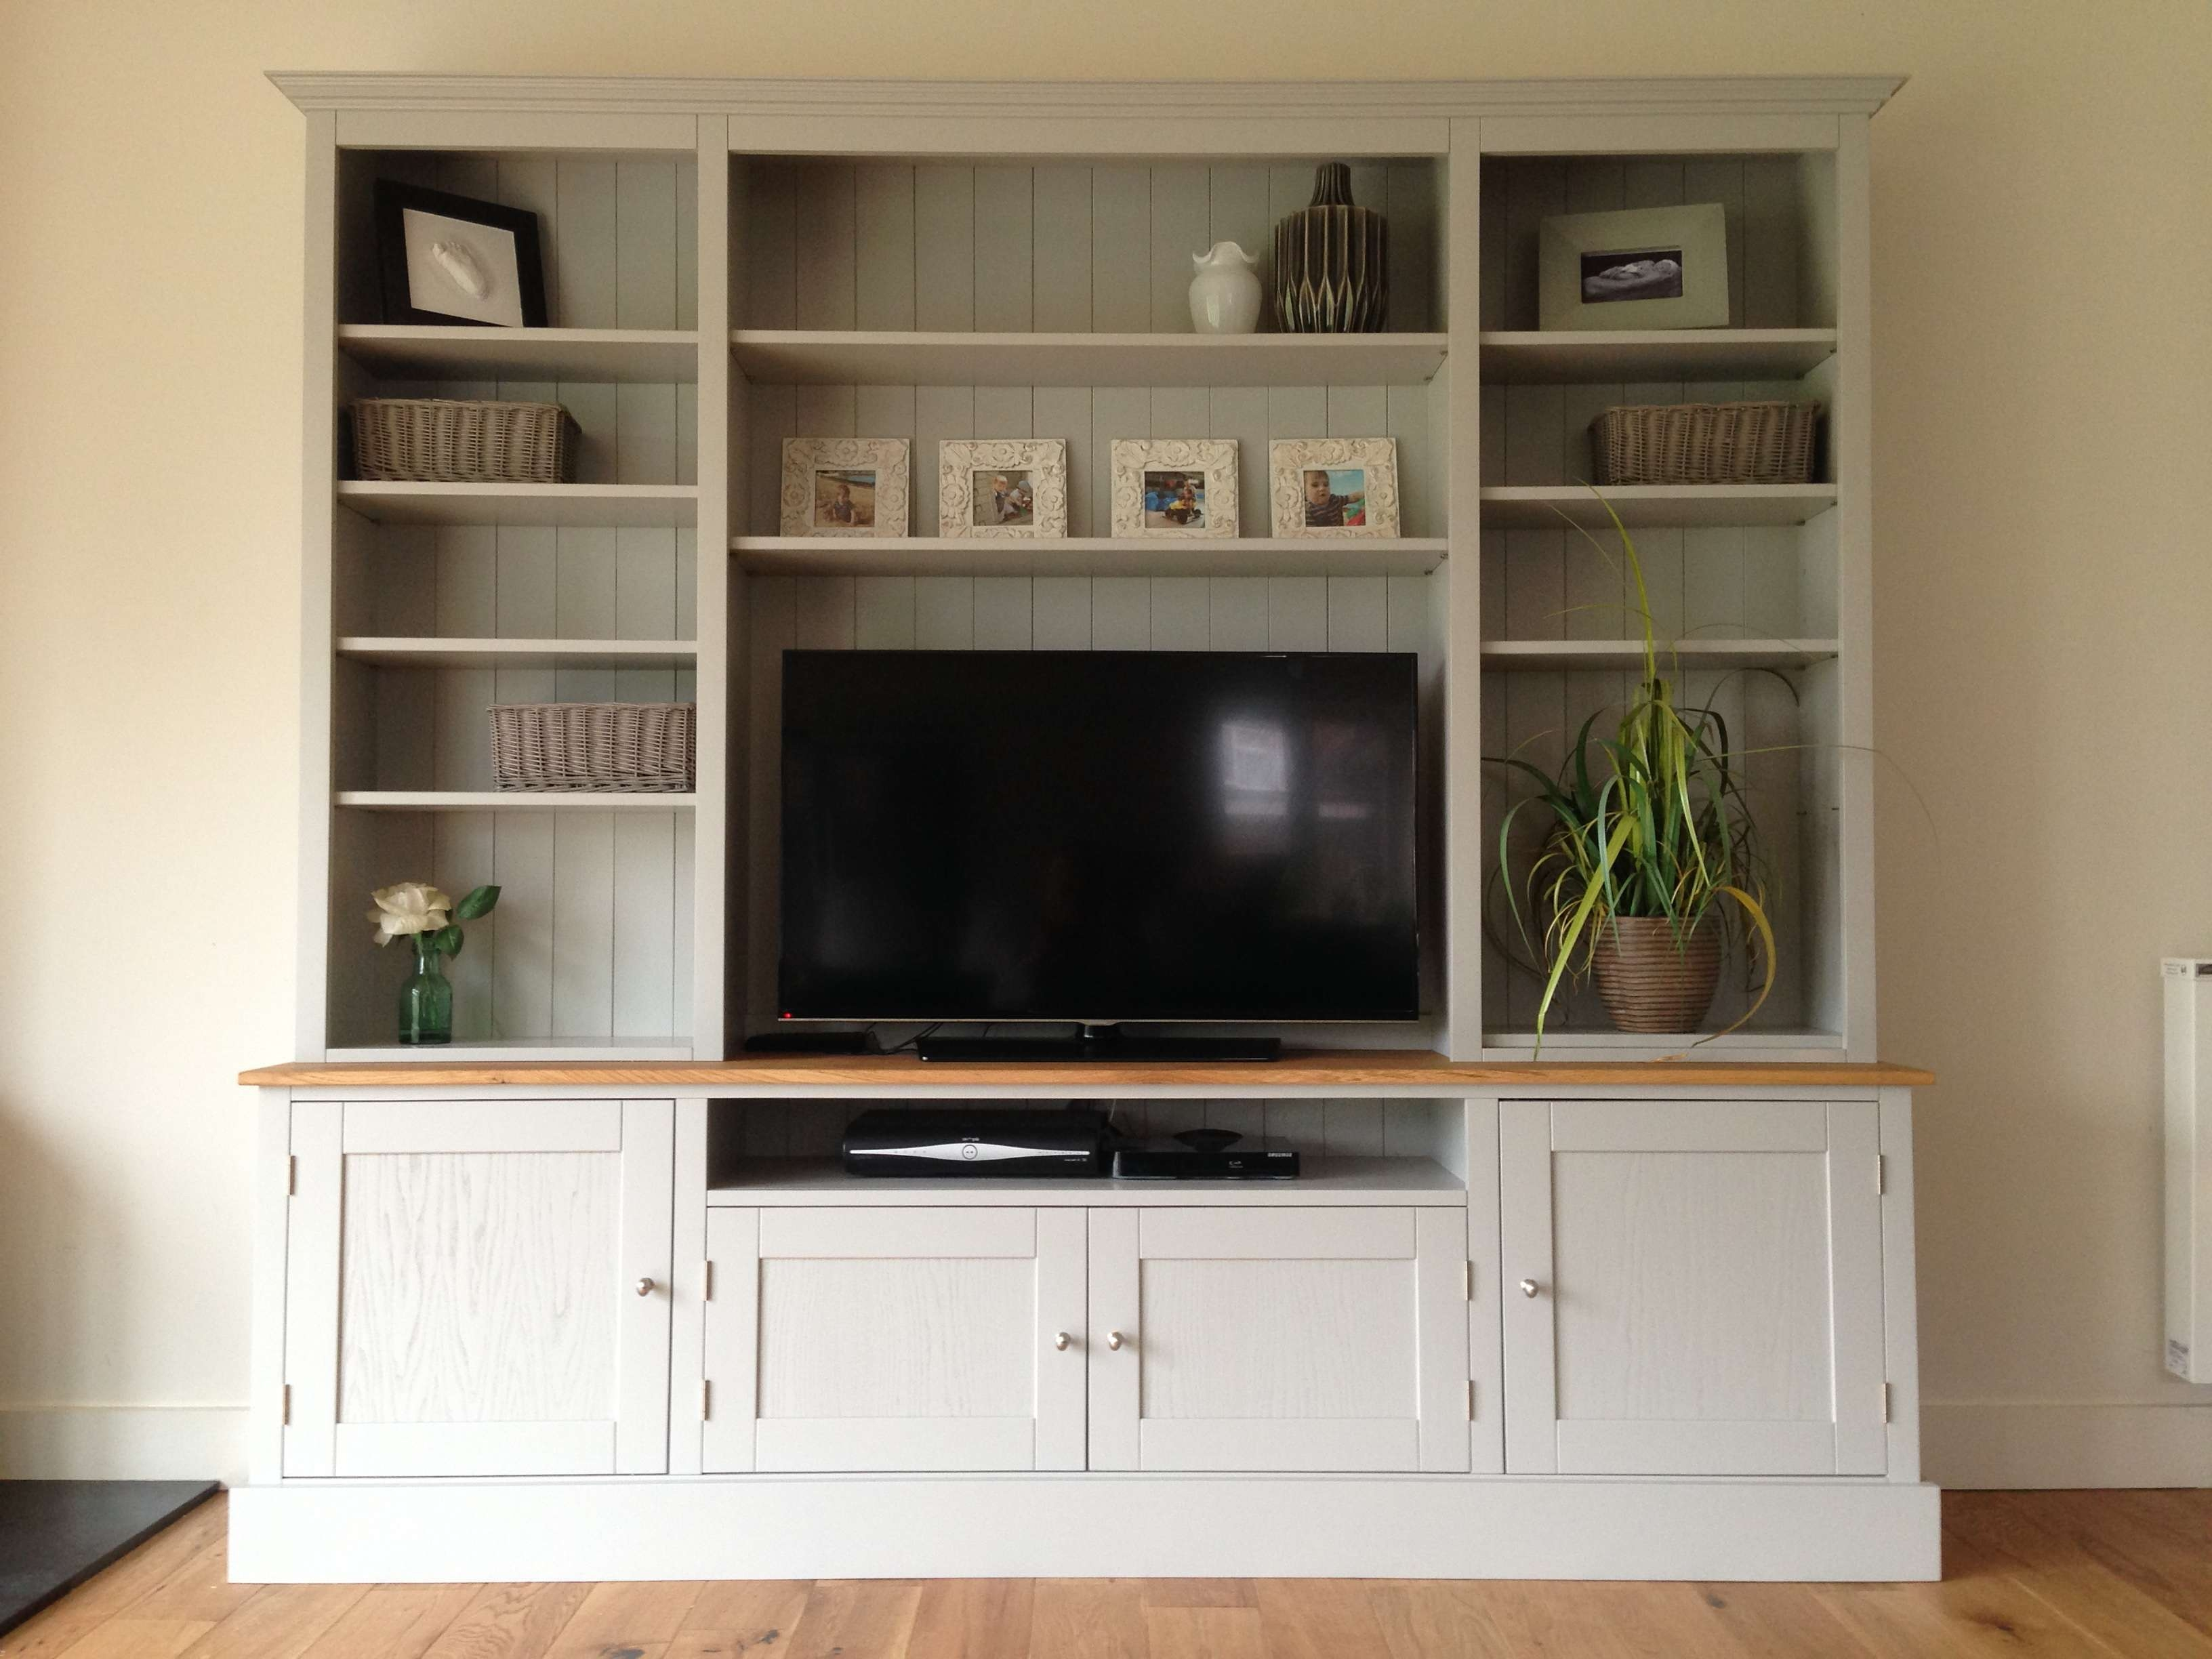 Georgeous 7Ft Painted Tv Unit / Dresser – Nest At Number 20 Intended For White Painted Tv Cabinets (View 7 of 20)